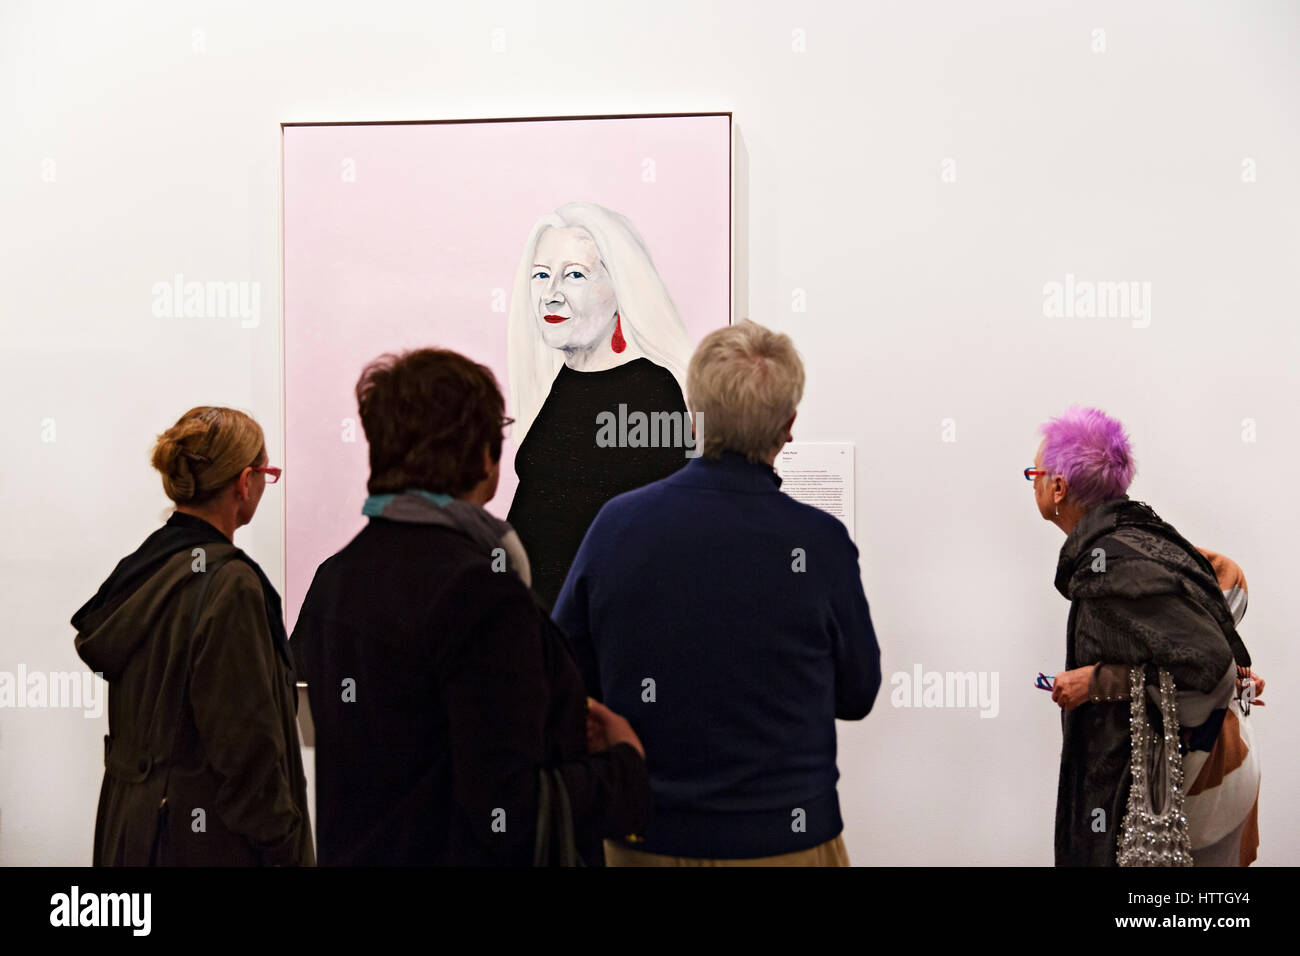 The 2016 Archibald Prize portrait of Roslyn Oxley on display at the Art Gallery of Ballarat,Victoria,Australia. - Stock Image